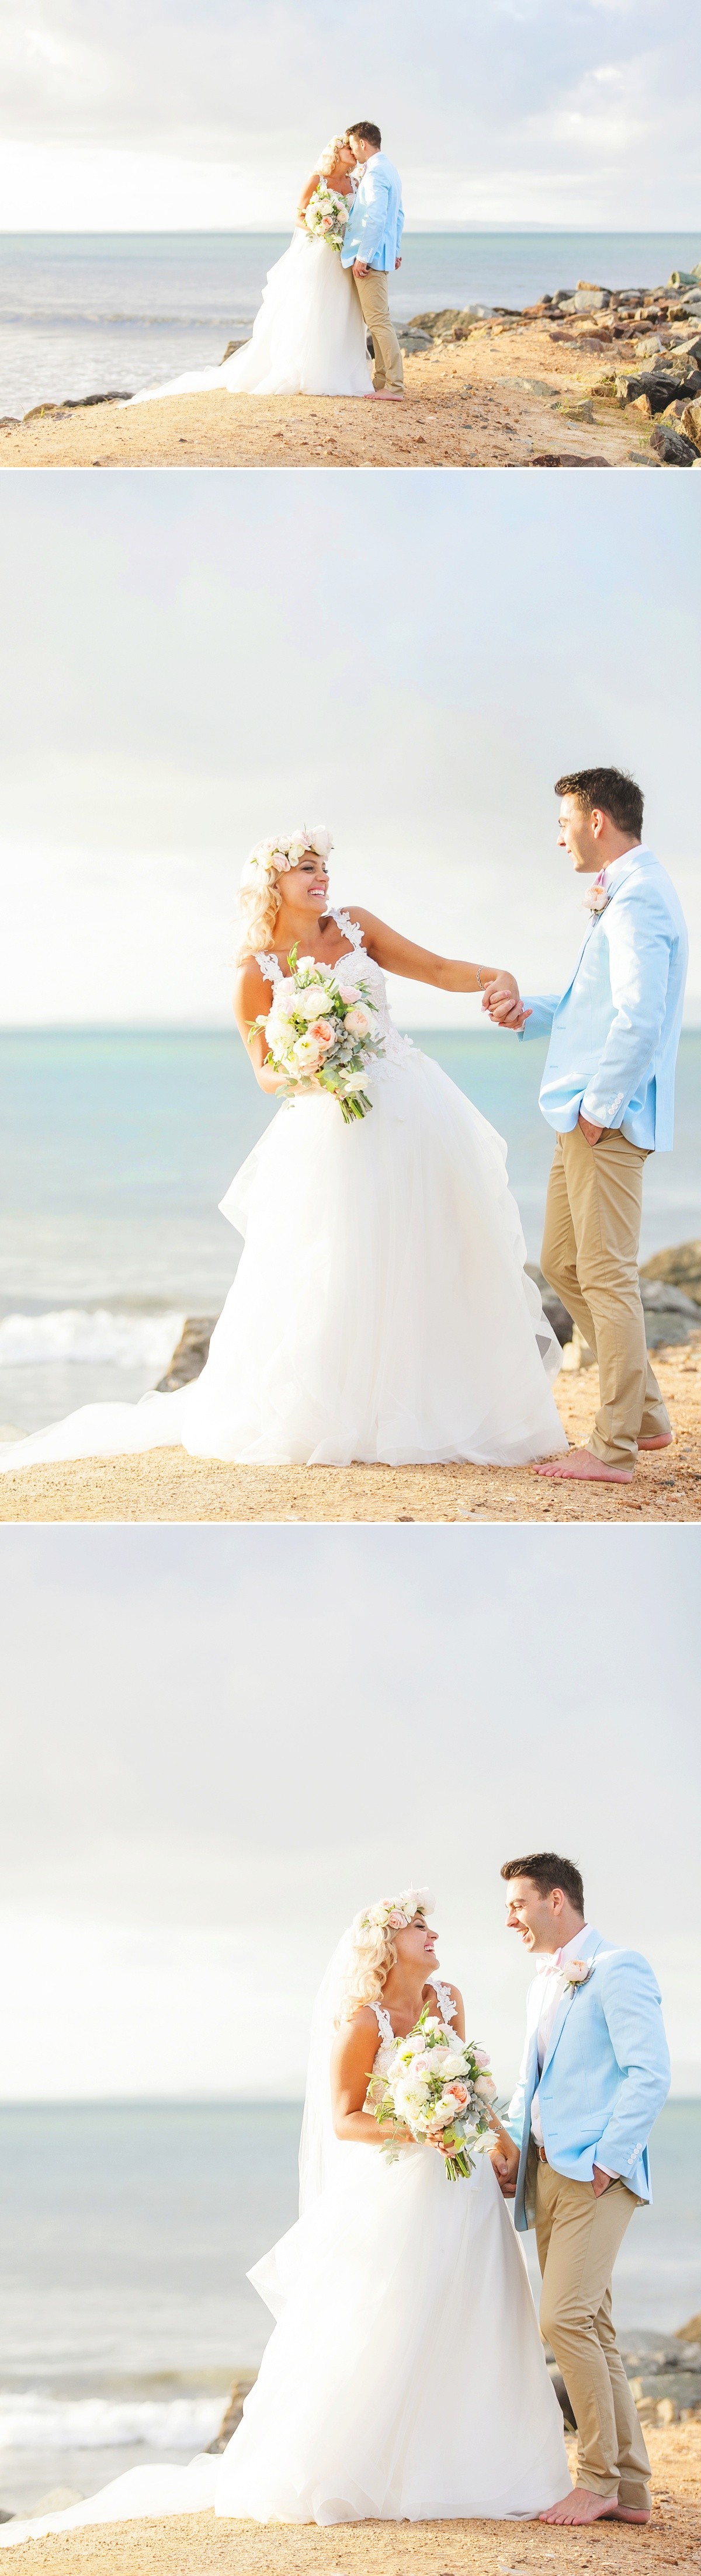 Noosa-rockwall-wedding-photos